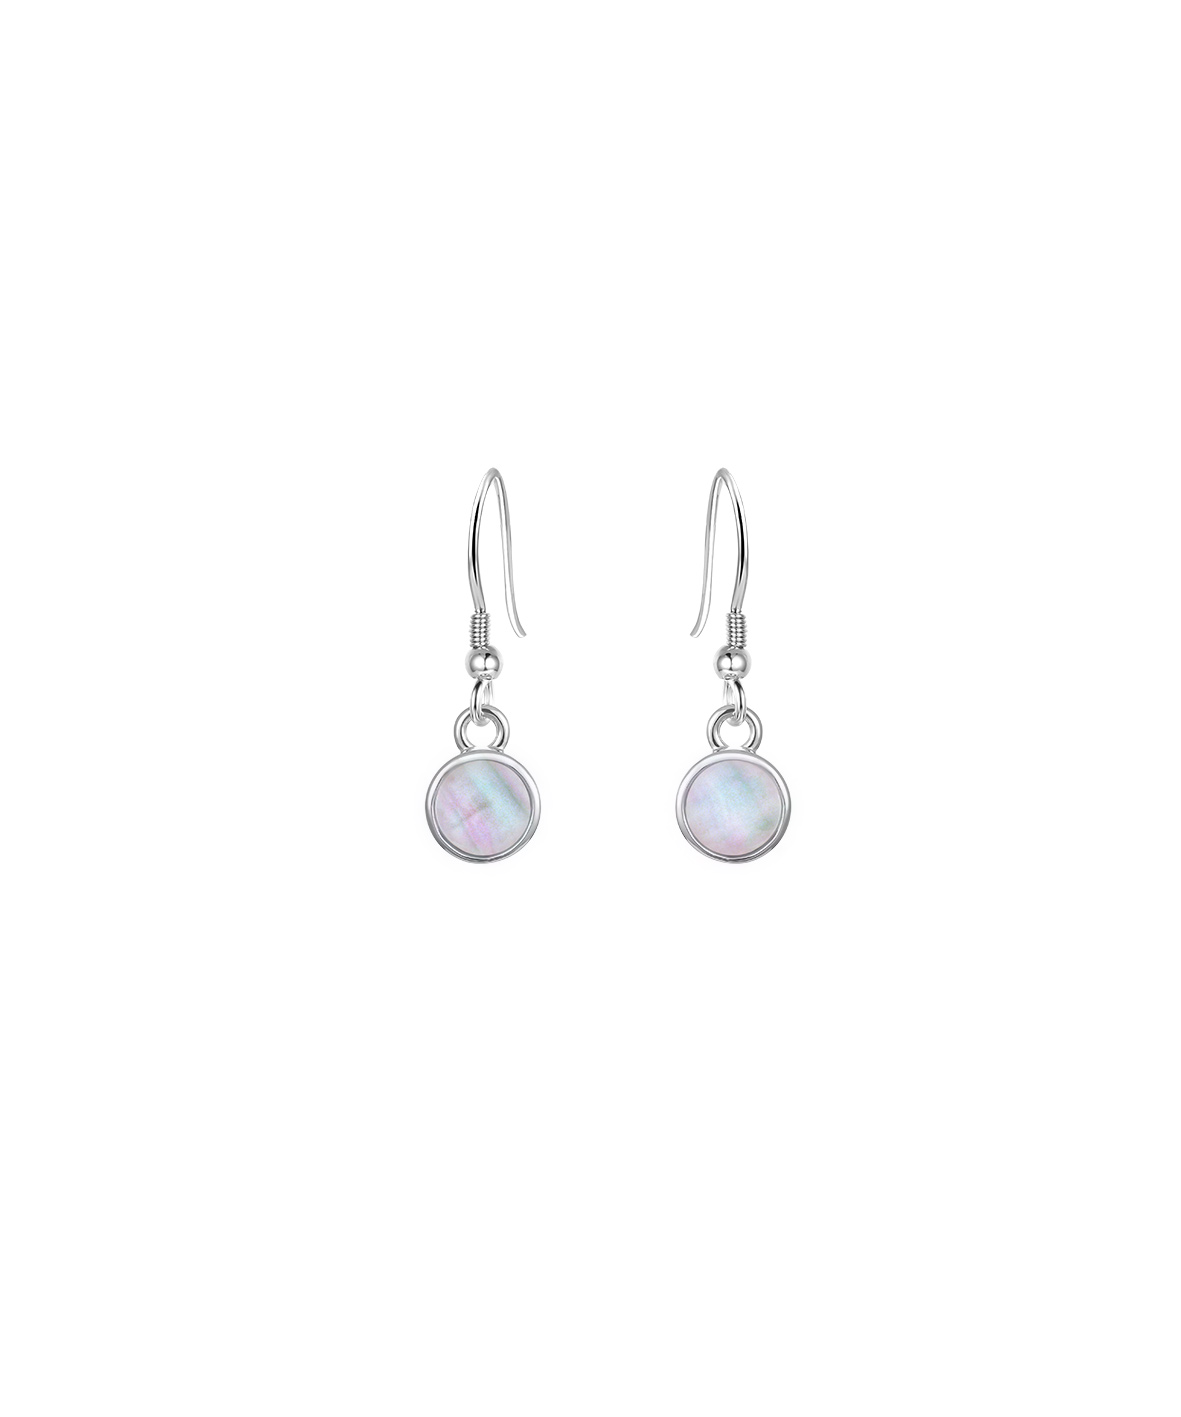 Jersey Ormer Small Droplet Earrings